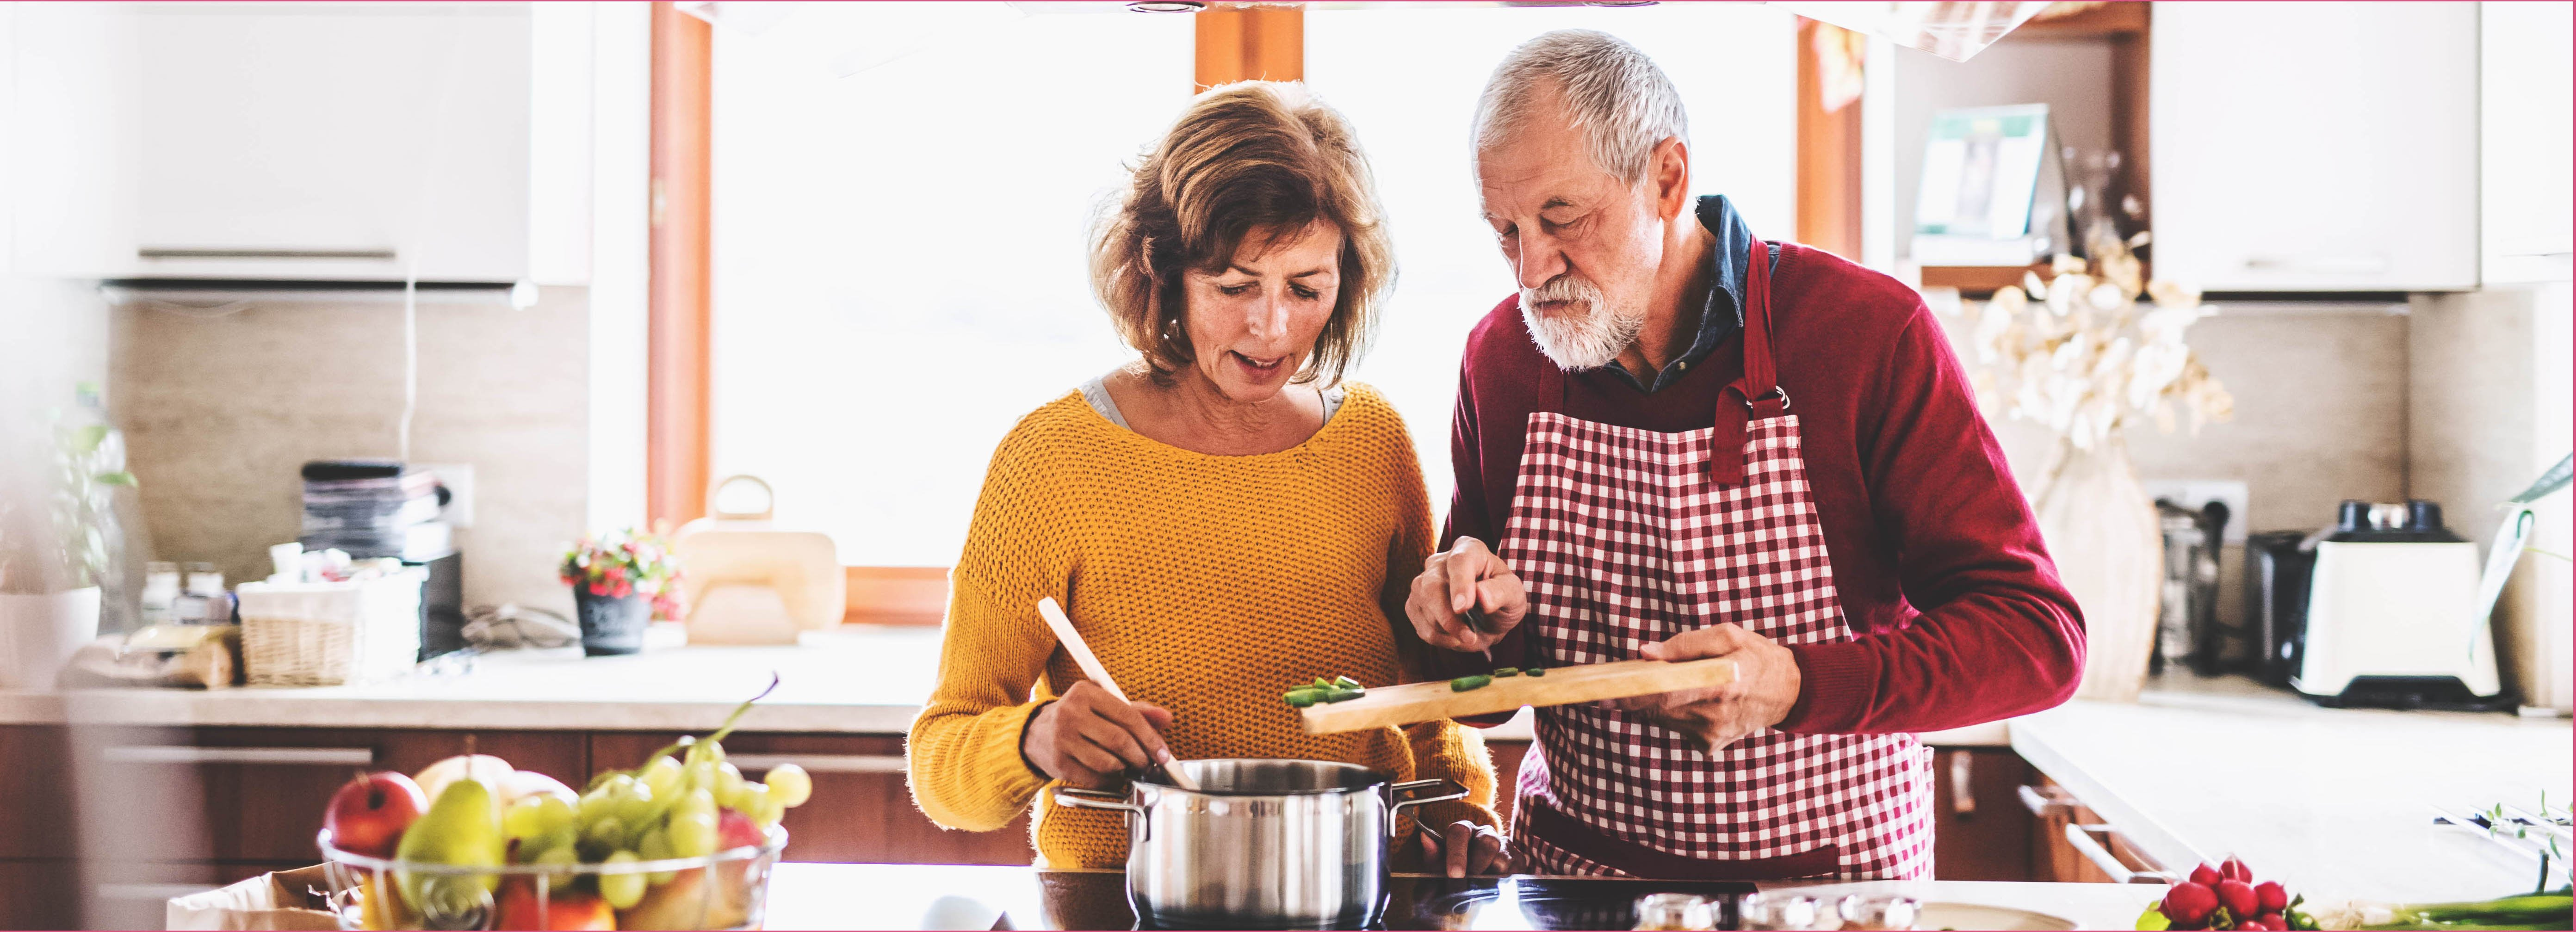 elderly couple cooking